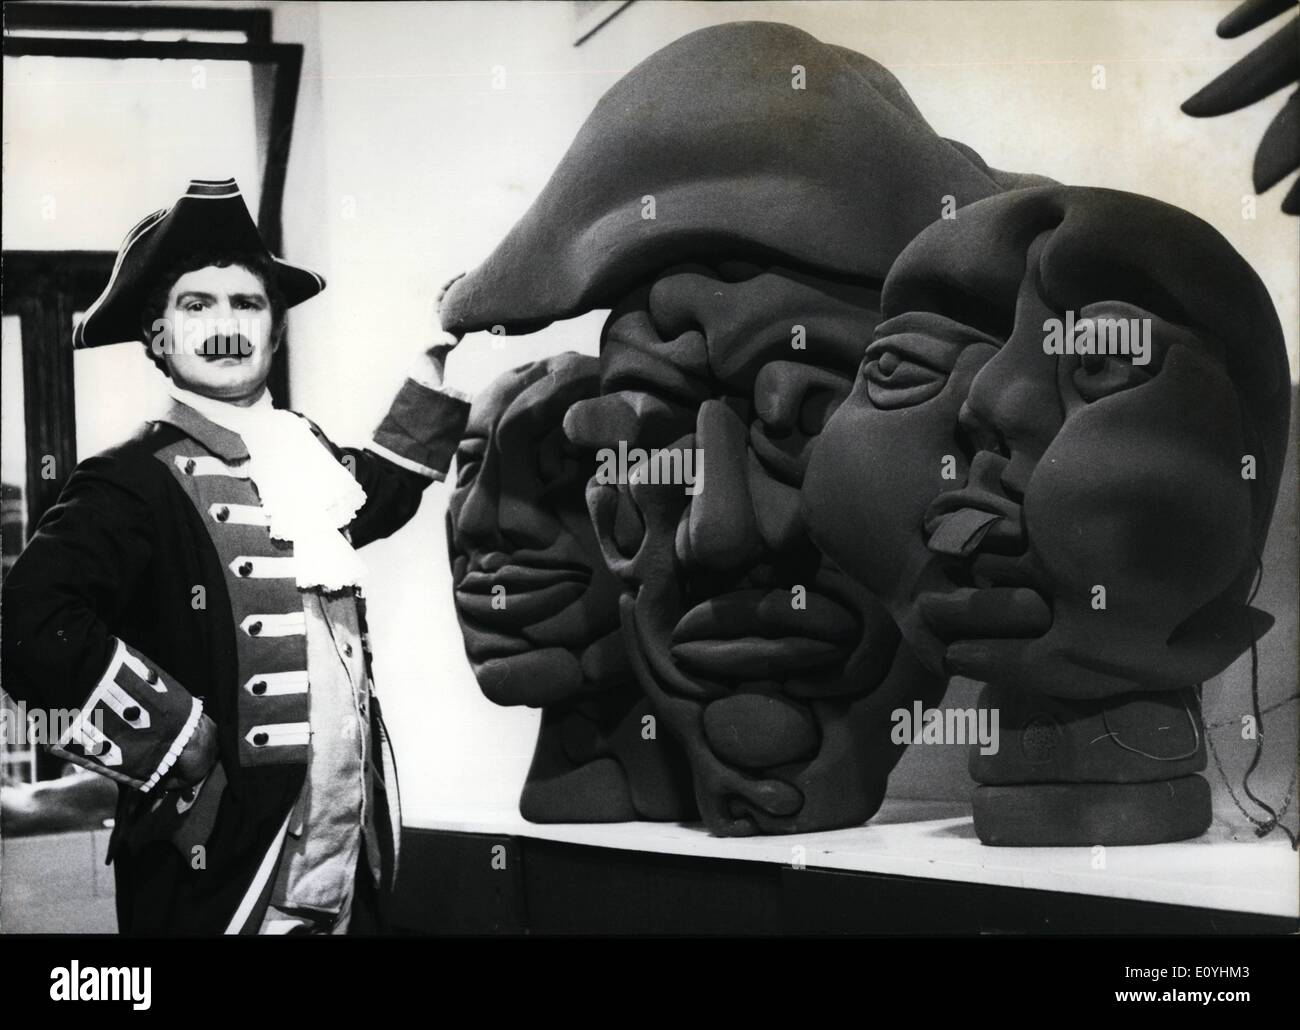 Jun. 06, 1970 - 250th birthday of Baron Muenchhausen: the famous ''lying baron''. on the occasion of his 250th anniversary a Munich gallery is exhibiting three plastic head by sculptor Olaf Taeuberhahn,,who made all three of them look like Baron Muenchhausen. But only one of them is the ''real'' Baron and the visitor will have to find out for himself which one. But- inside each of the plastic heads there are small record players giving hints as to the right head or not. - Stock Image